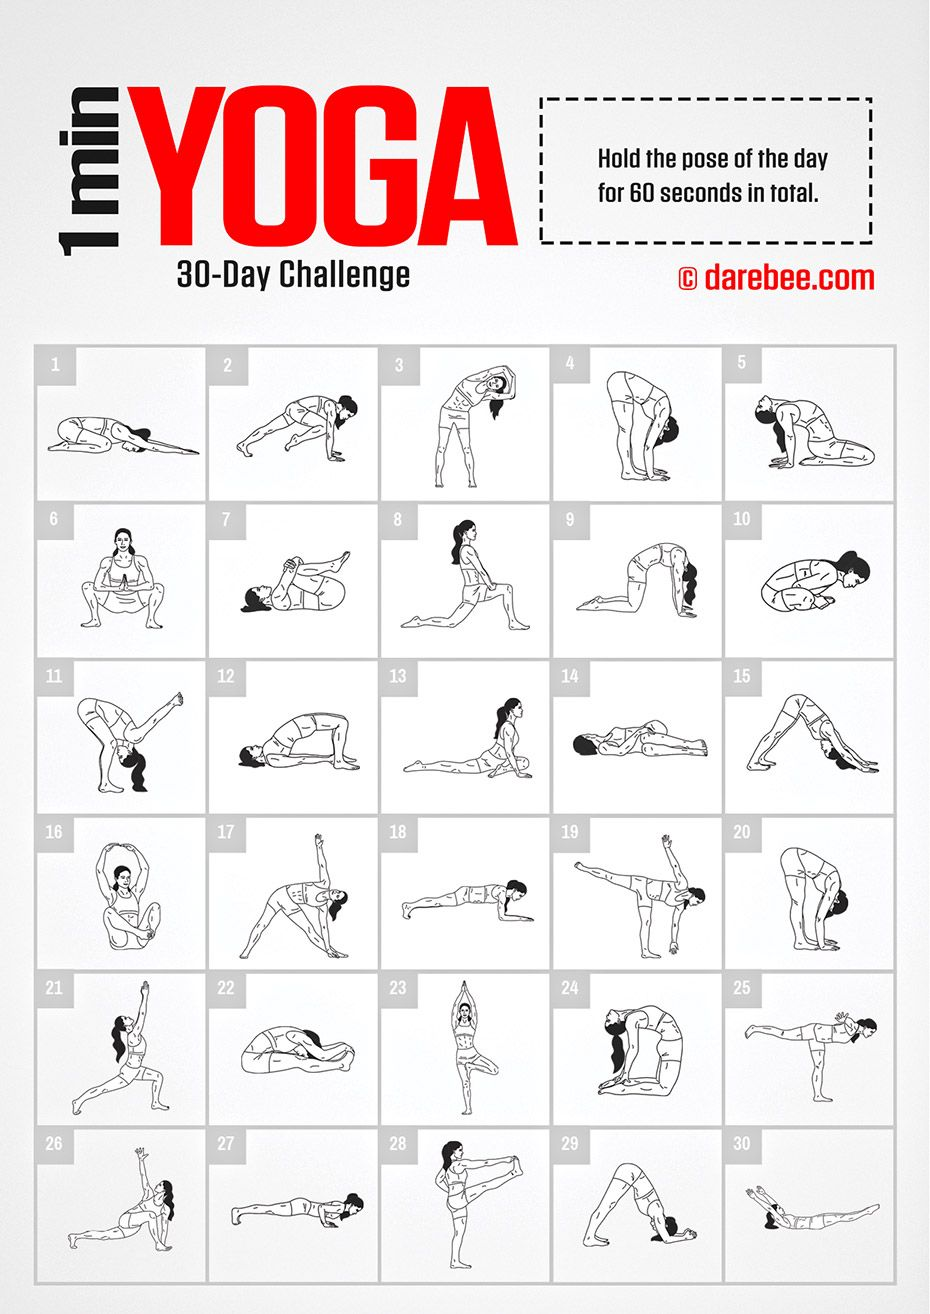 Yoga Workout | Posted By: